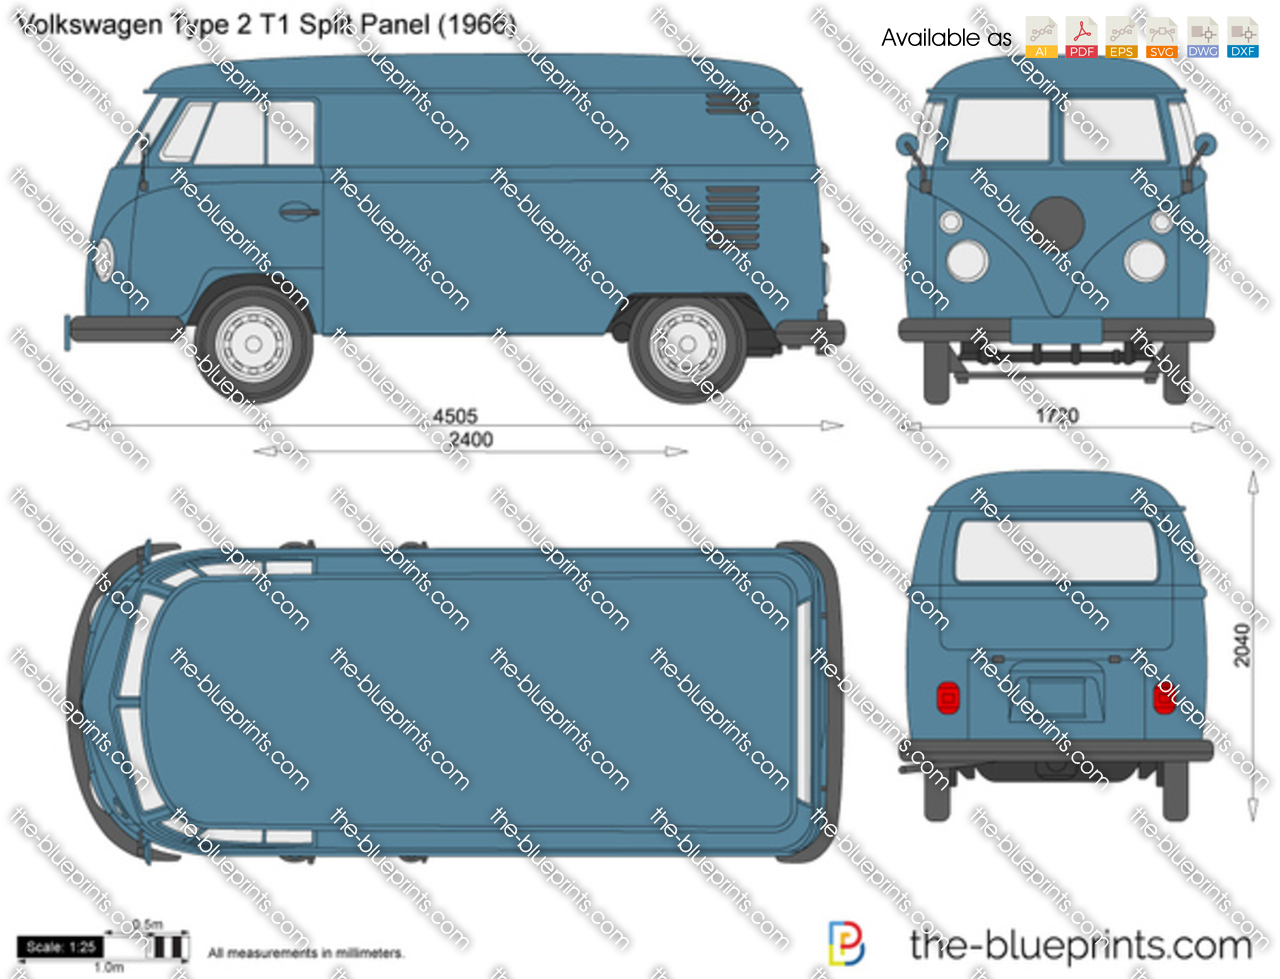 1950 Volkswagen Type 2 T1 Split Panel